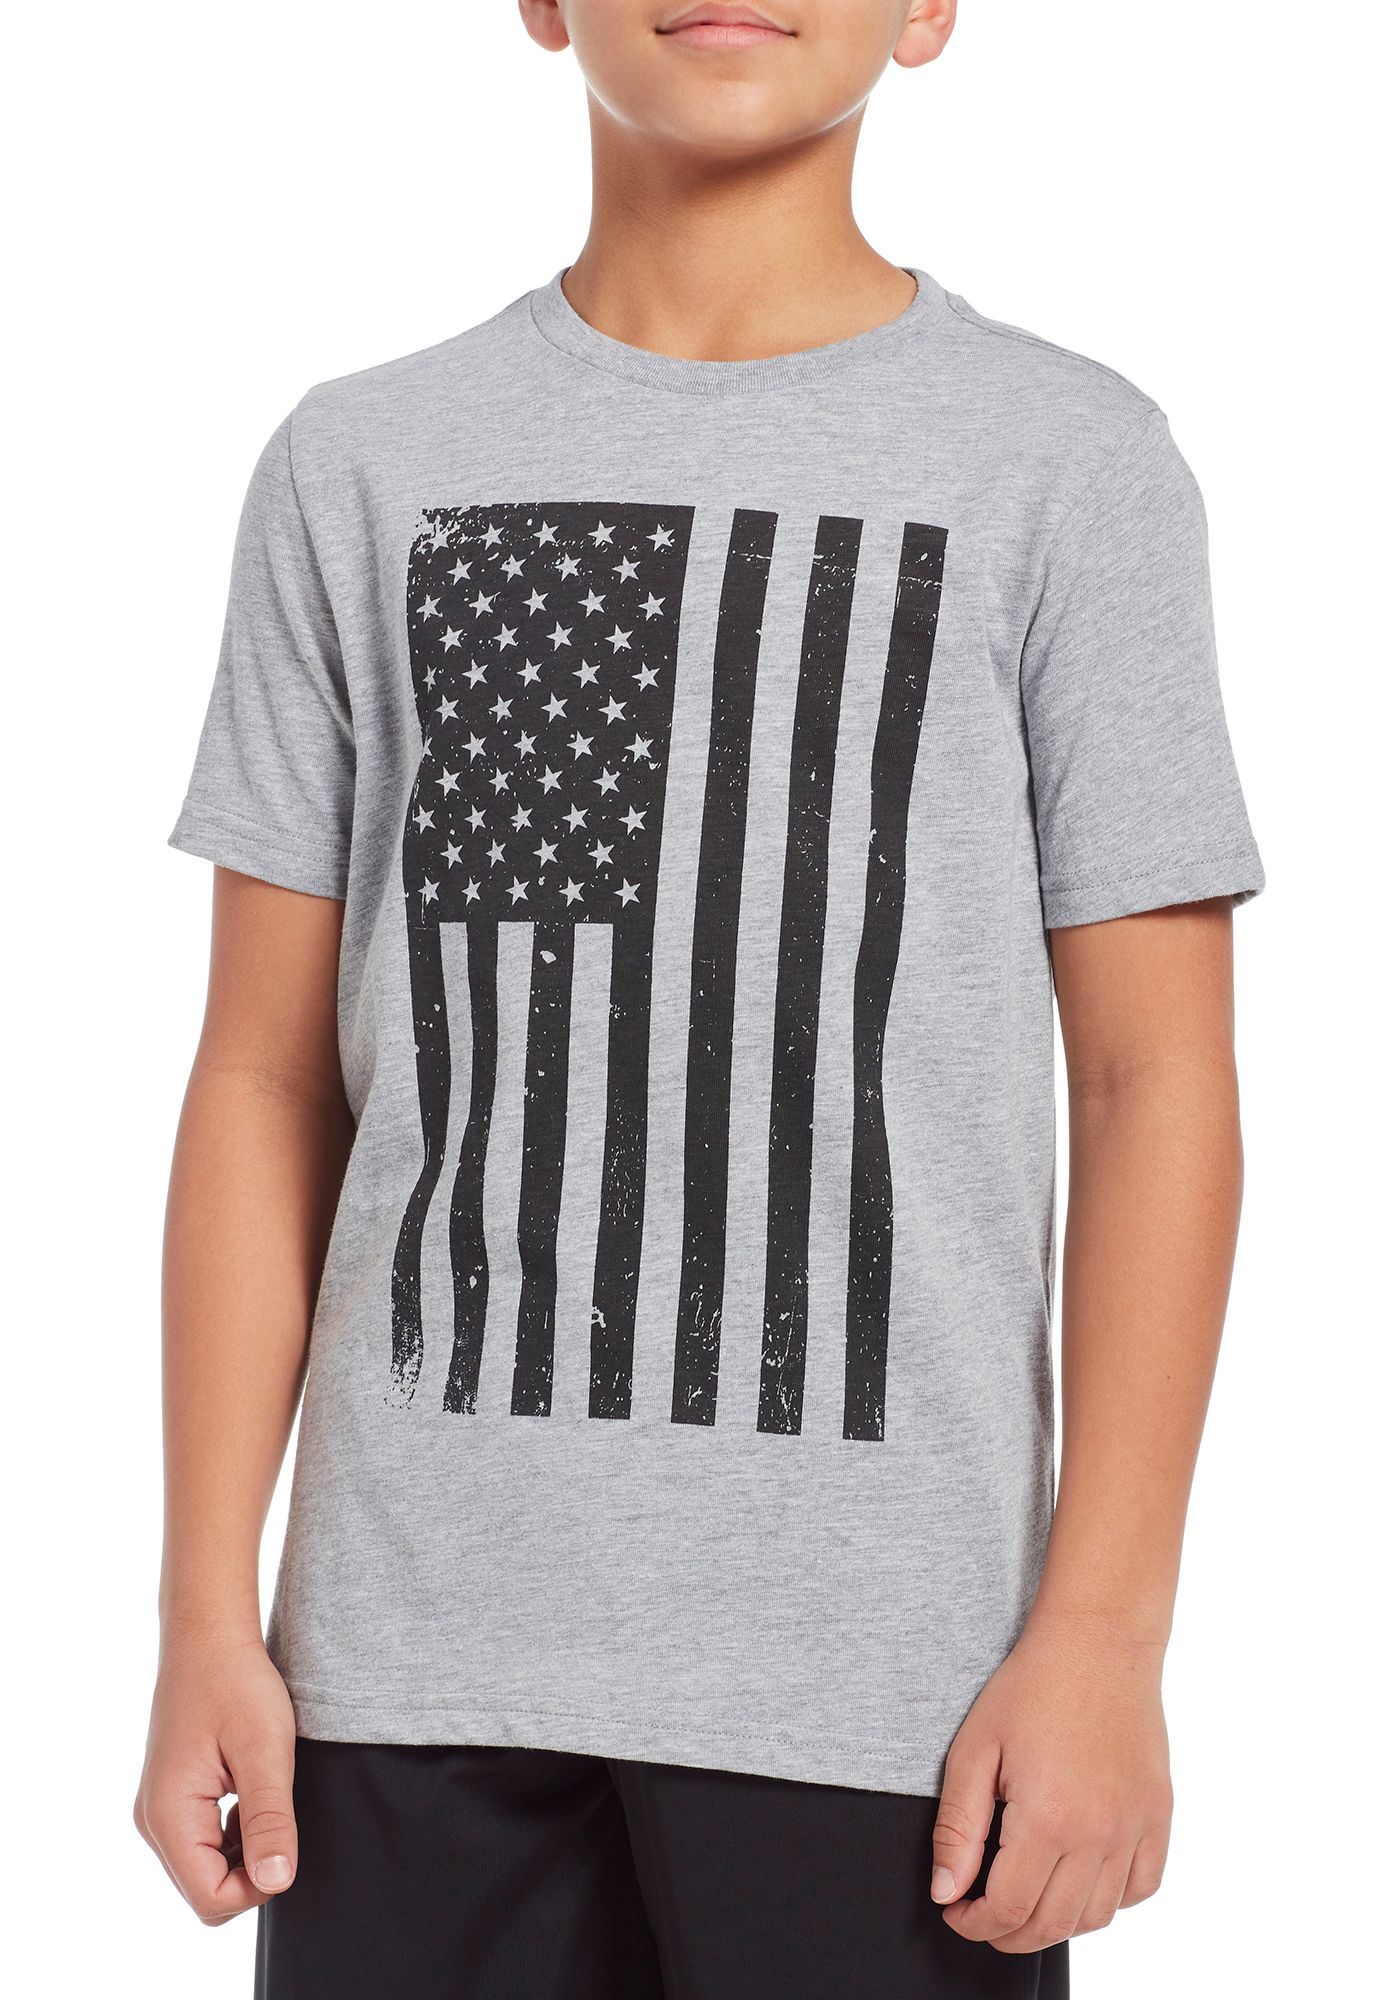 Field & Stream Boys' Americana Graphic T-Shirt